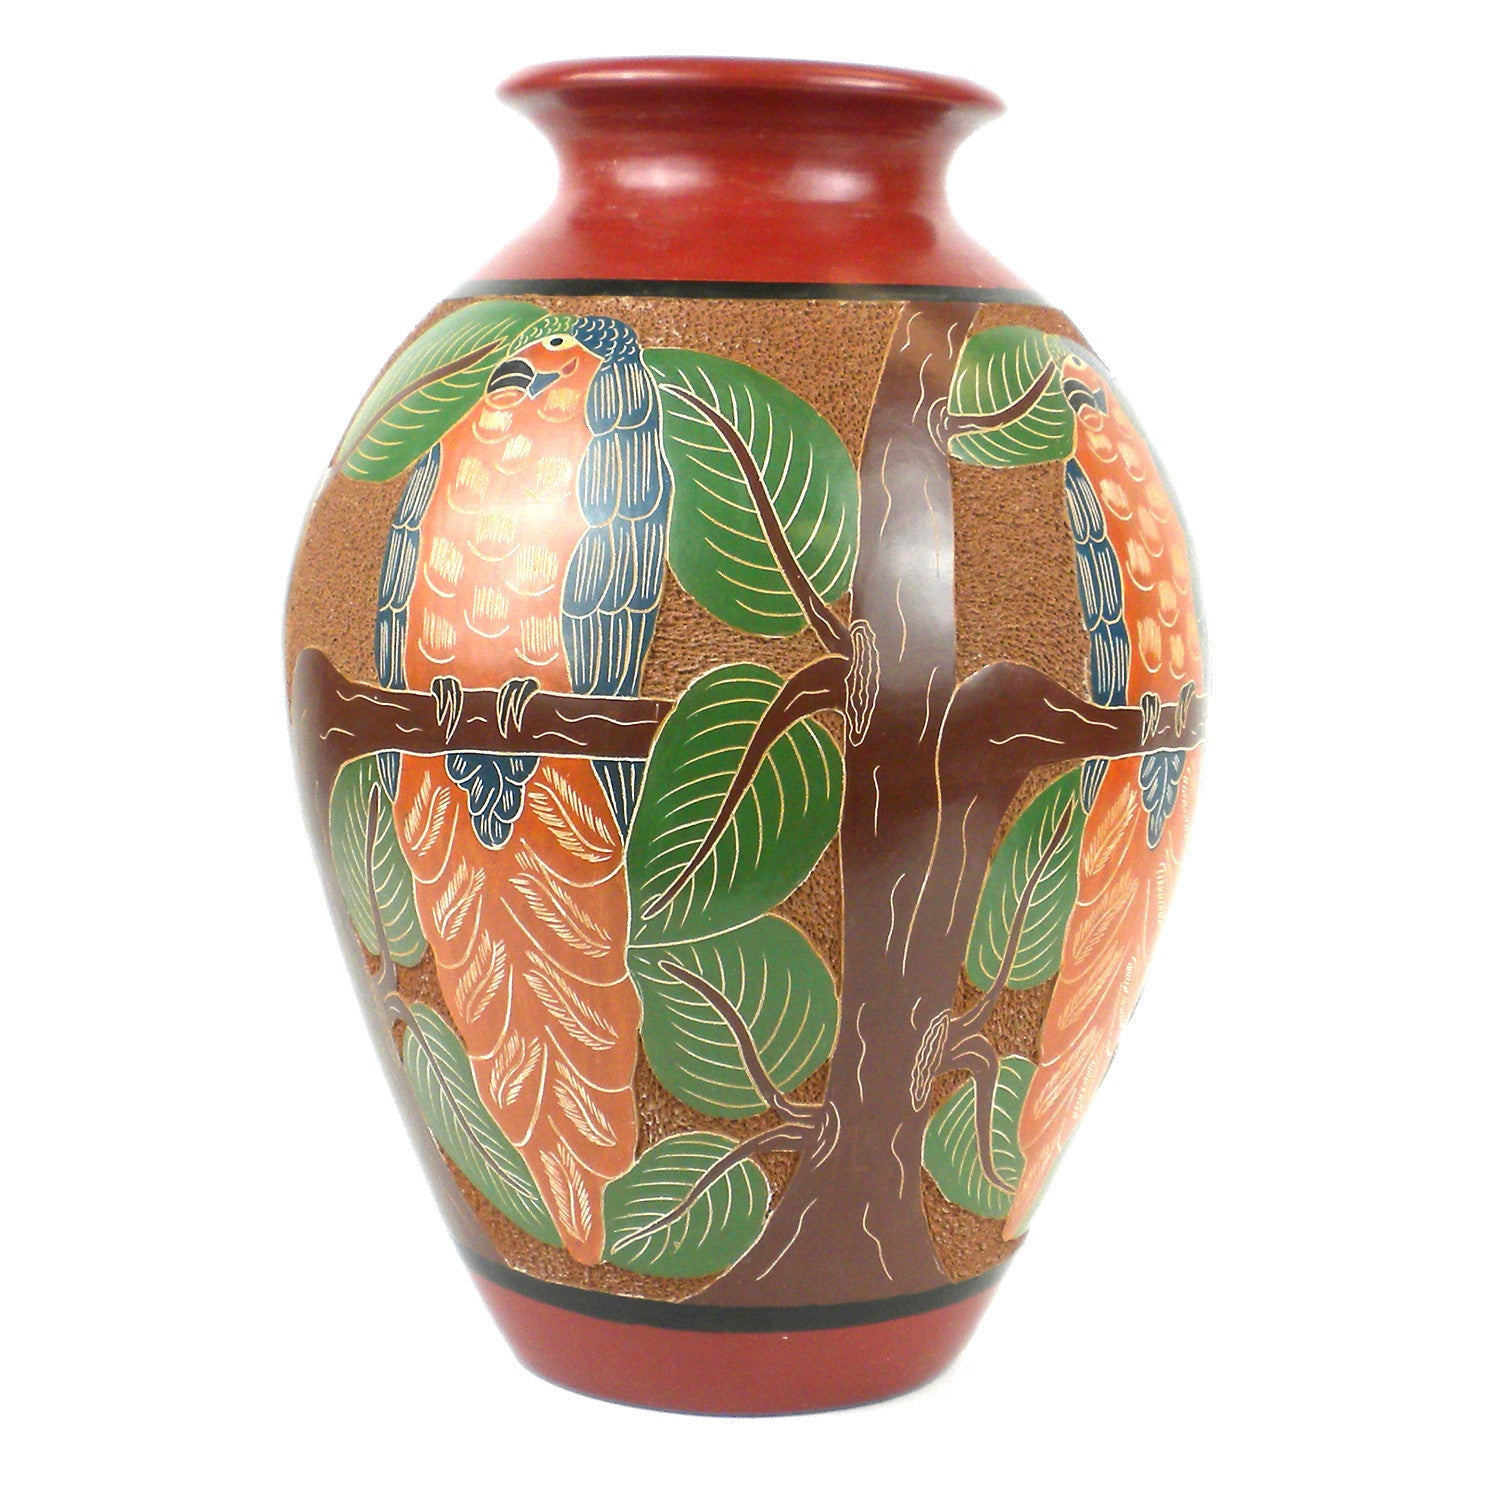 13 inch Tall Vase - Parrot Relief Handmade and Fair Trade